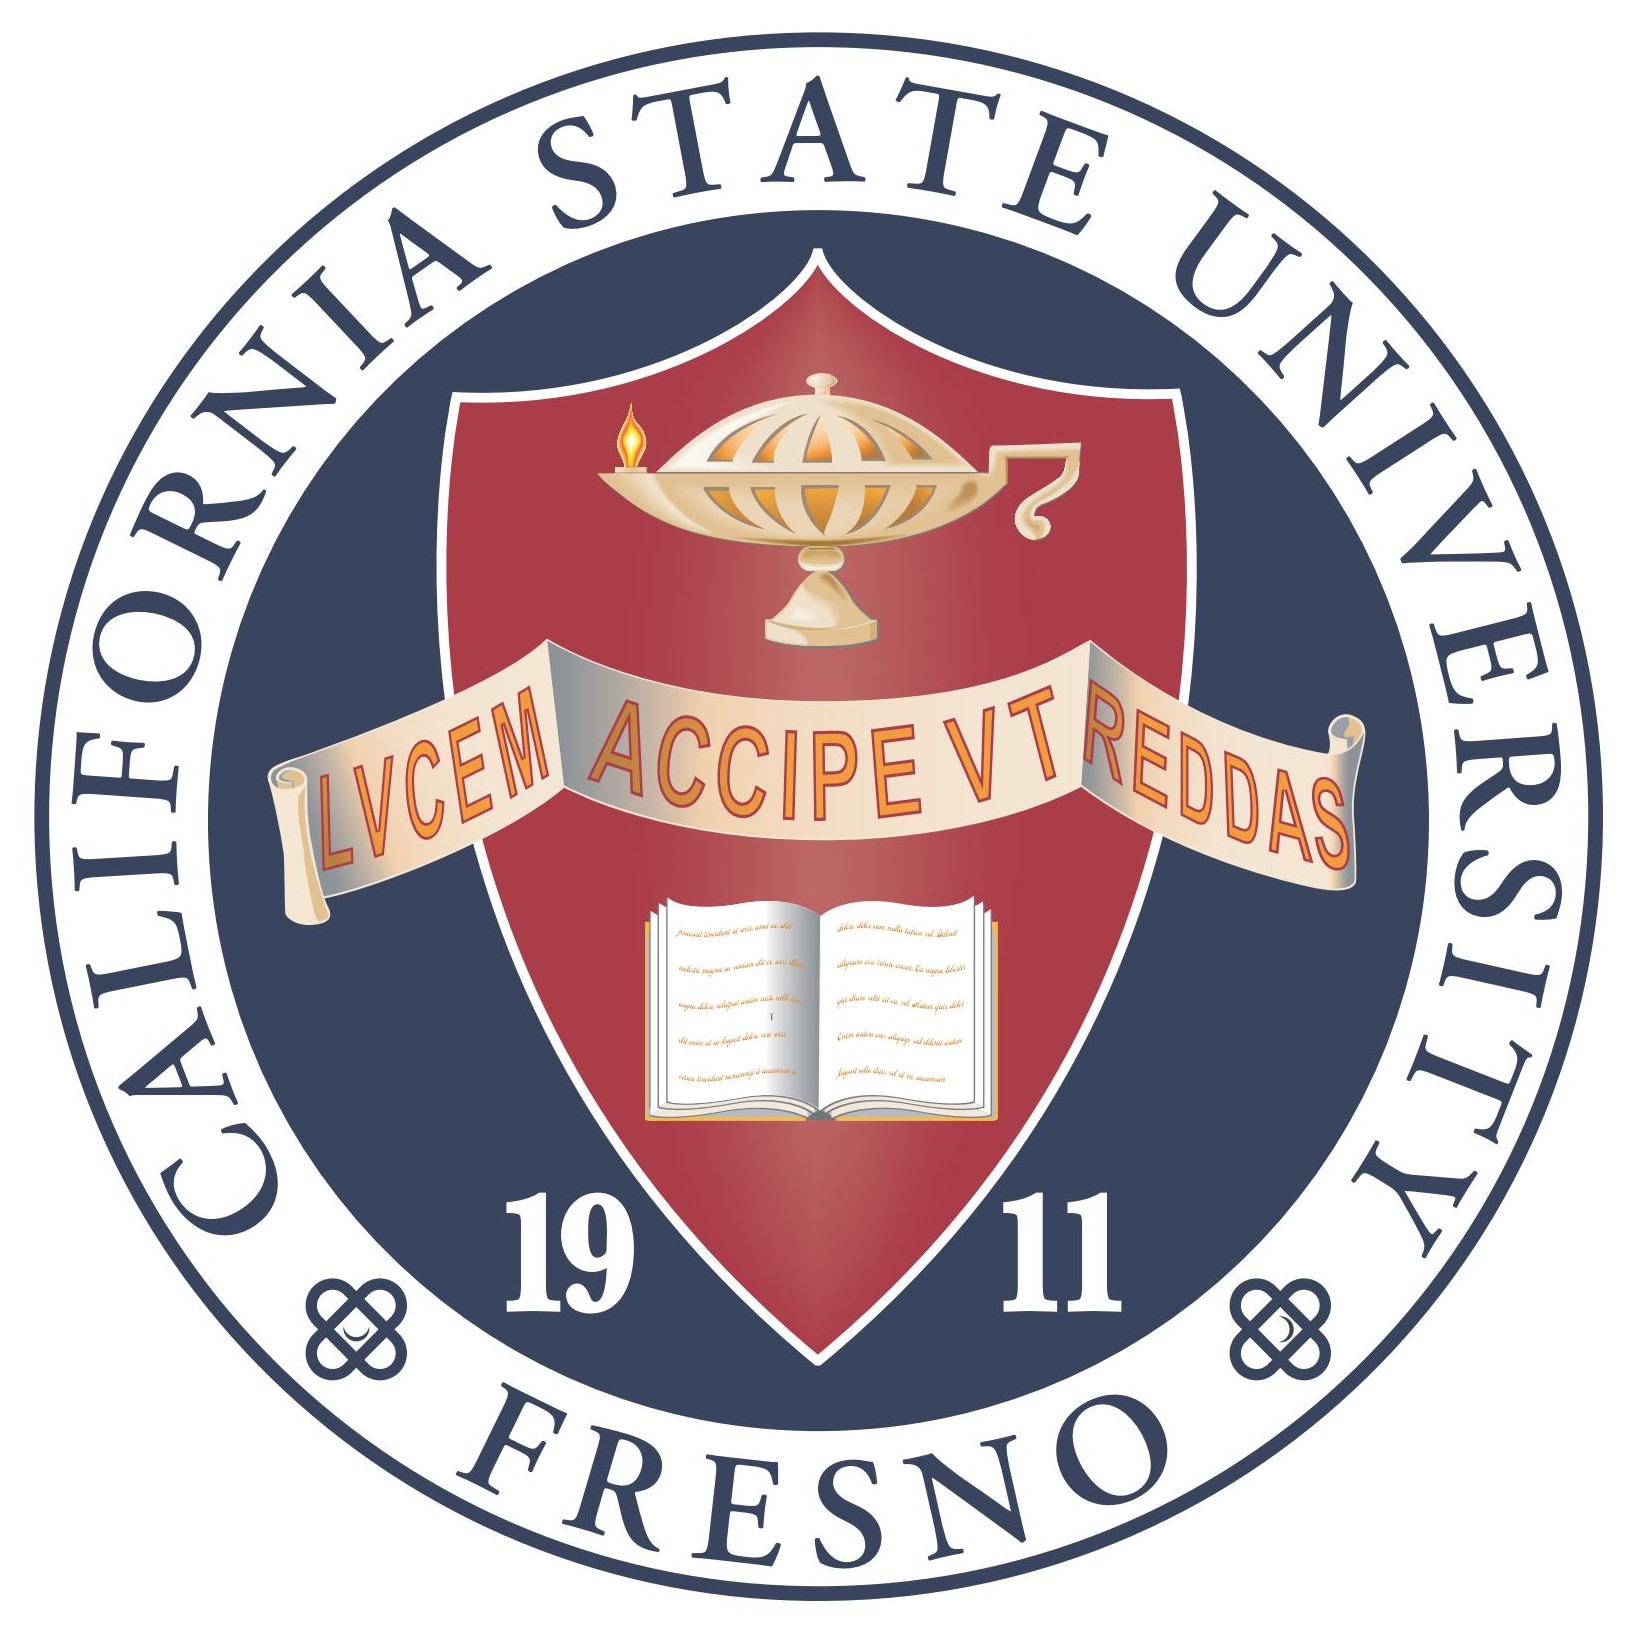 California physical therapy university - Assistant Associate Professor Physical Therapy California State University